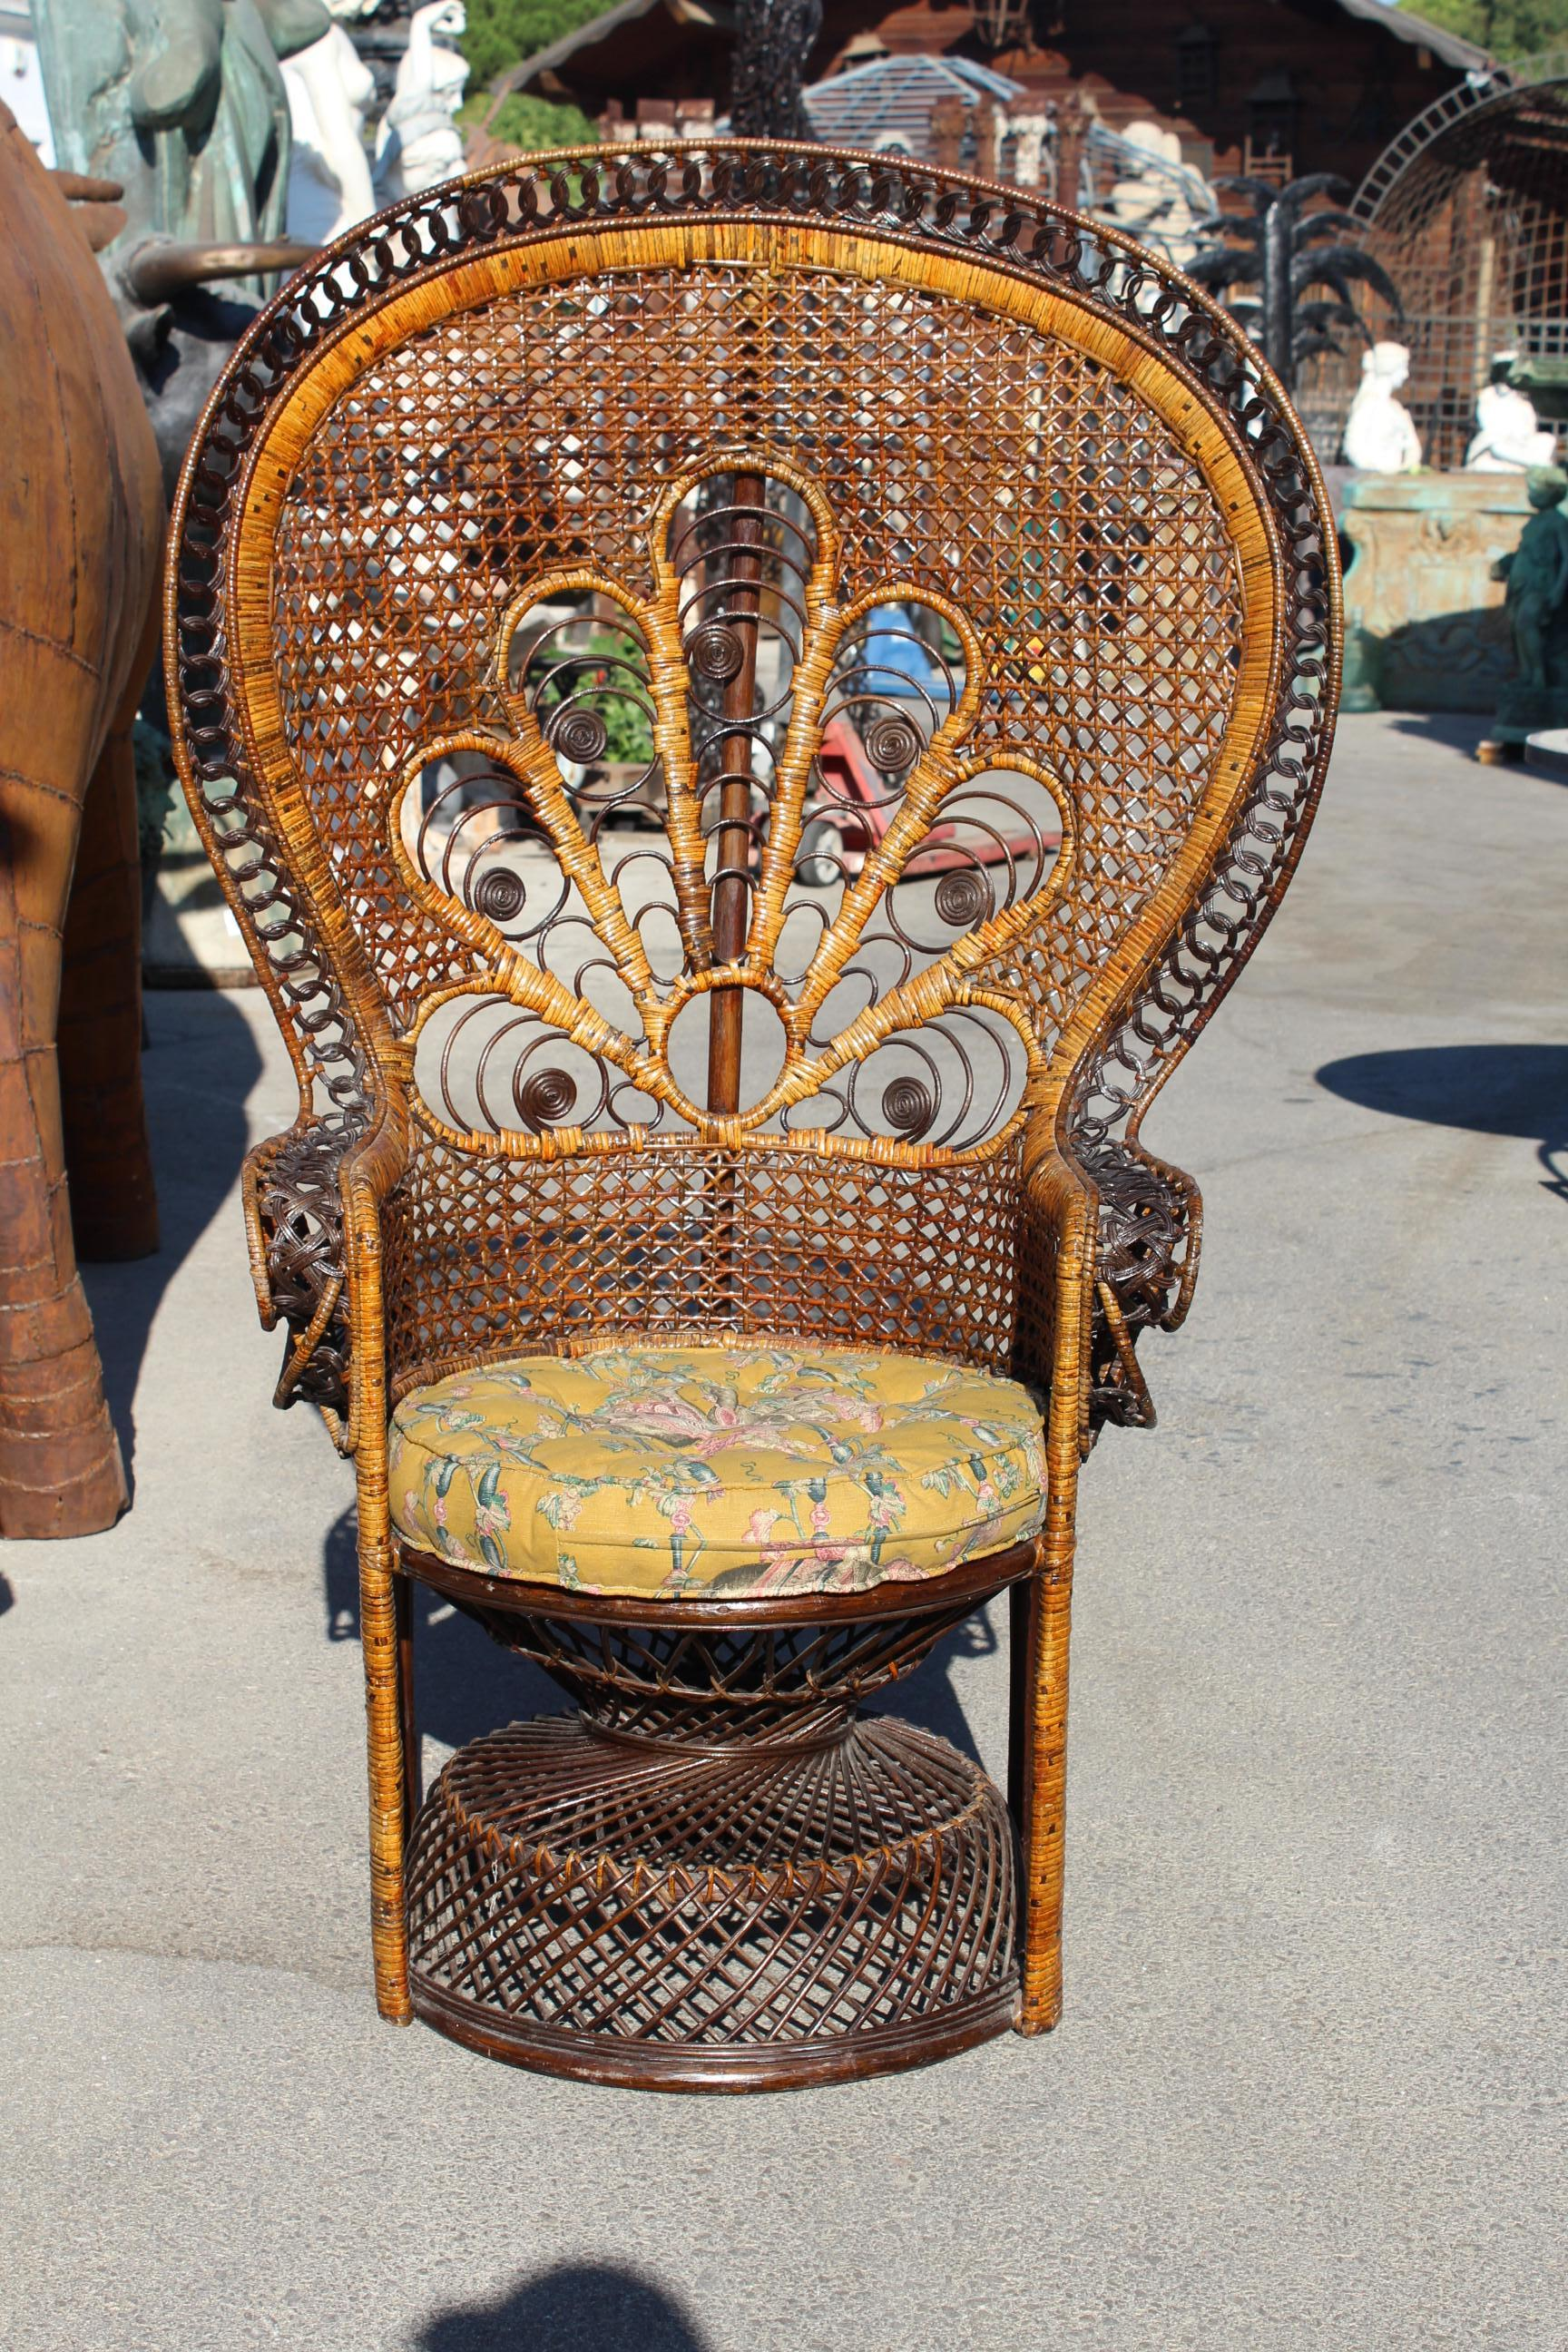 1970s Large Vintage Bohemian Emmanuelle / Peacock Wicker Chair.